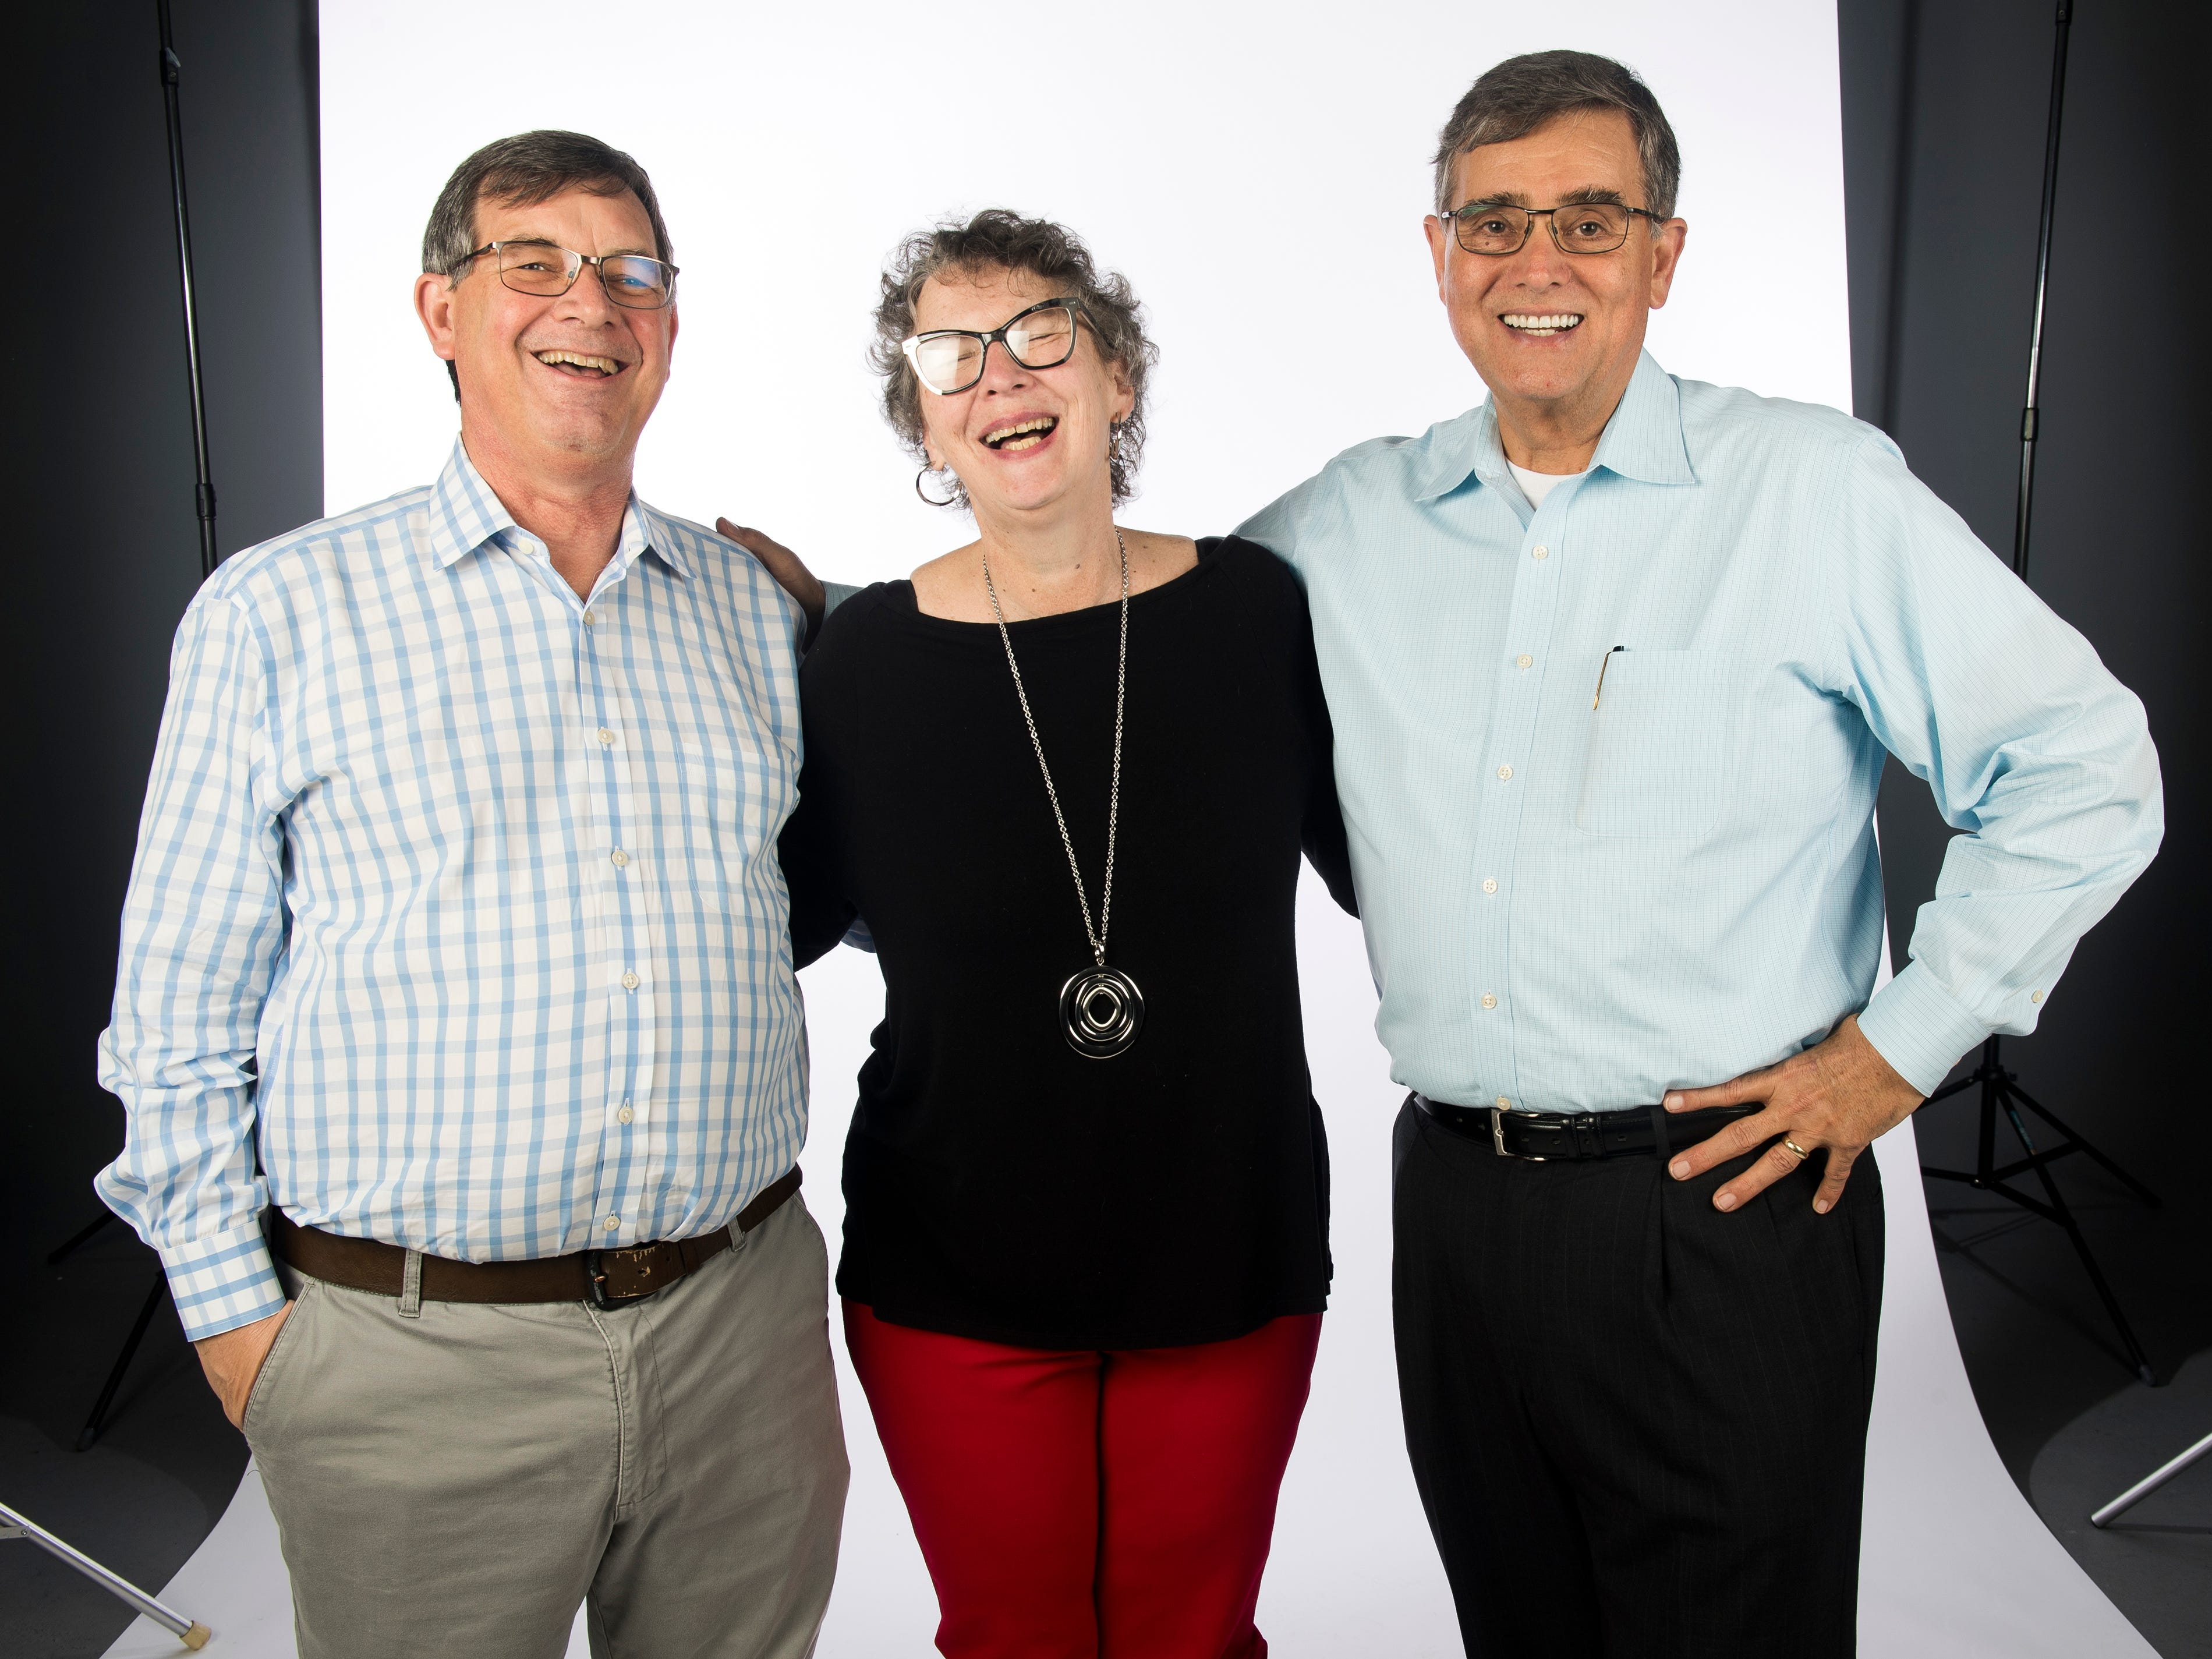 From left, Jack Lail, Mary Constantine and Michael Patrick in the News Sentinel studio on Wednesday, January 2, 2019. The News Sentinel celebrated the retirements of Mary Constantine, Jack Lail and Michael Patrick.